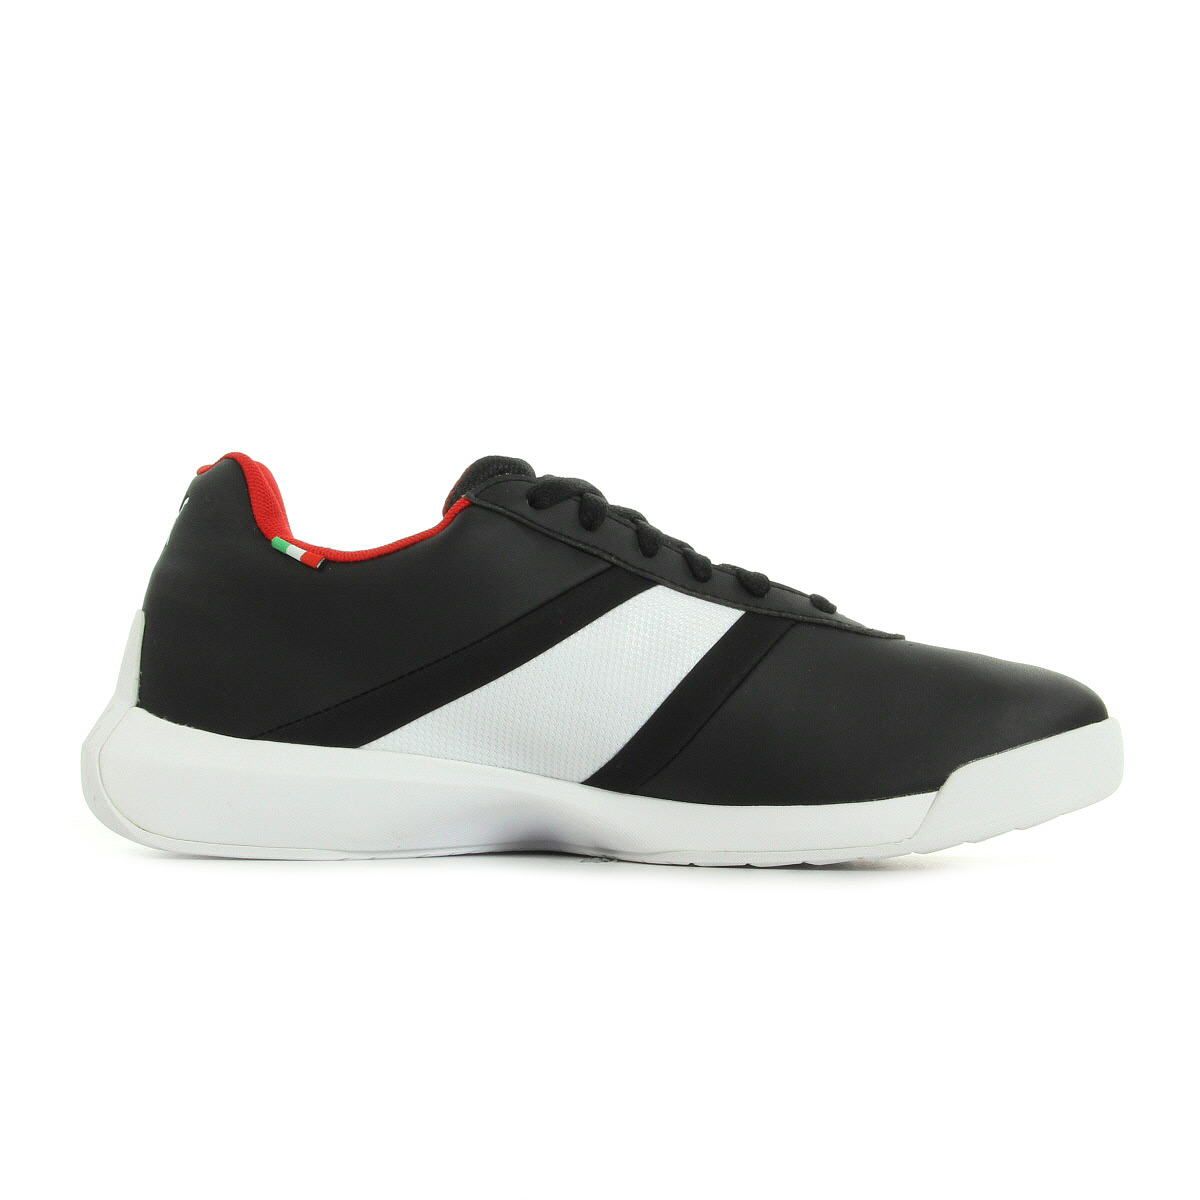 Chaussures Tech Taille Puma Podio Sf Baskets Homme vr4wrqI